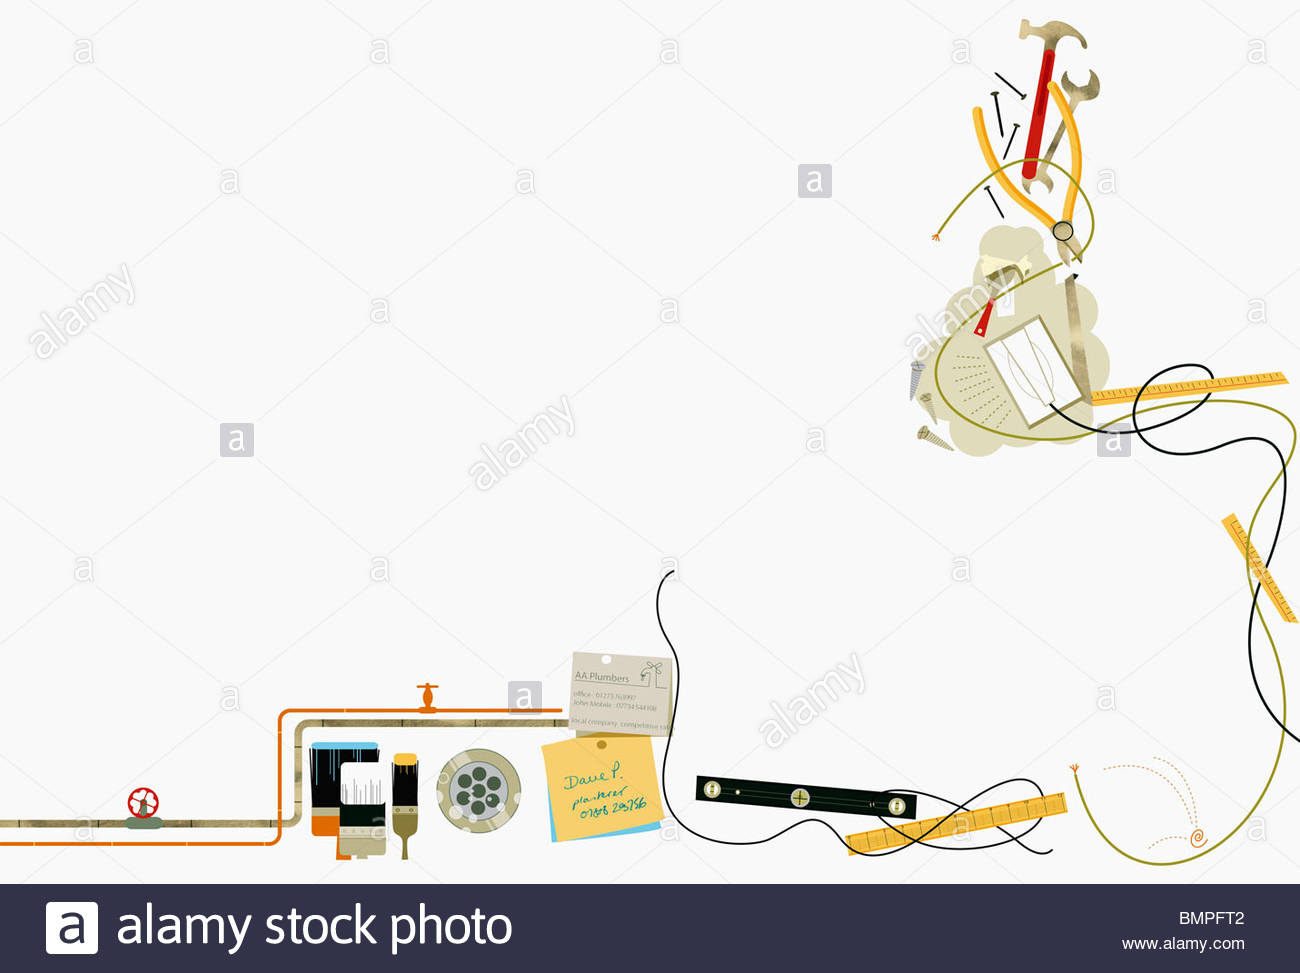 Do it yourself tools stock photo 29998866 alamy do it yourself tools solutioingenieria Gallery